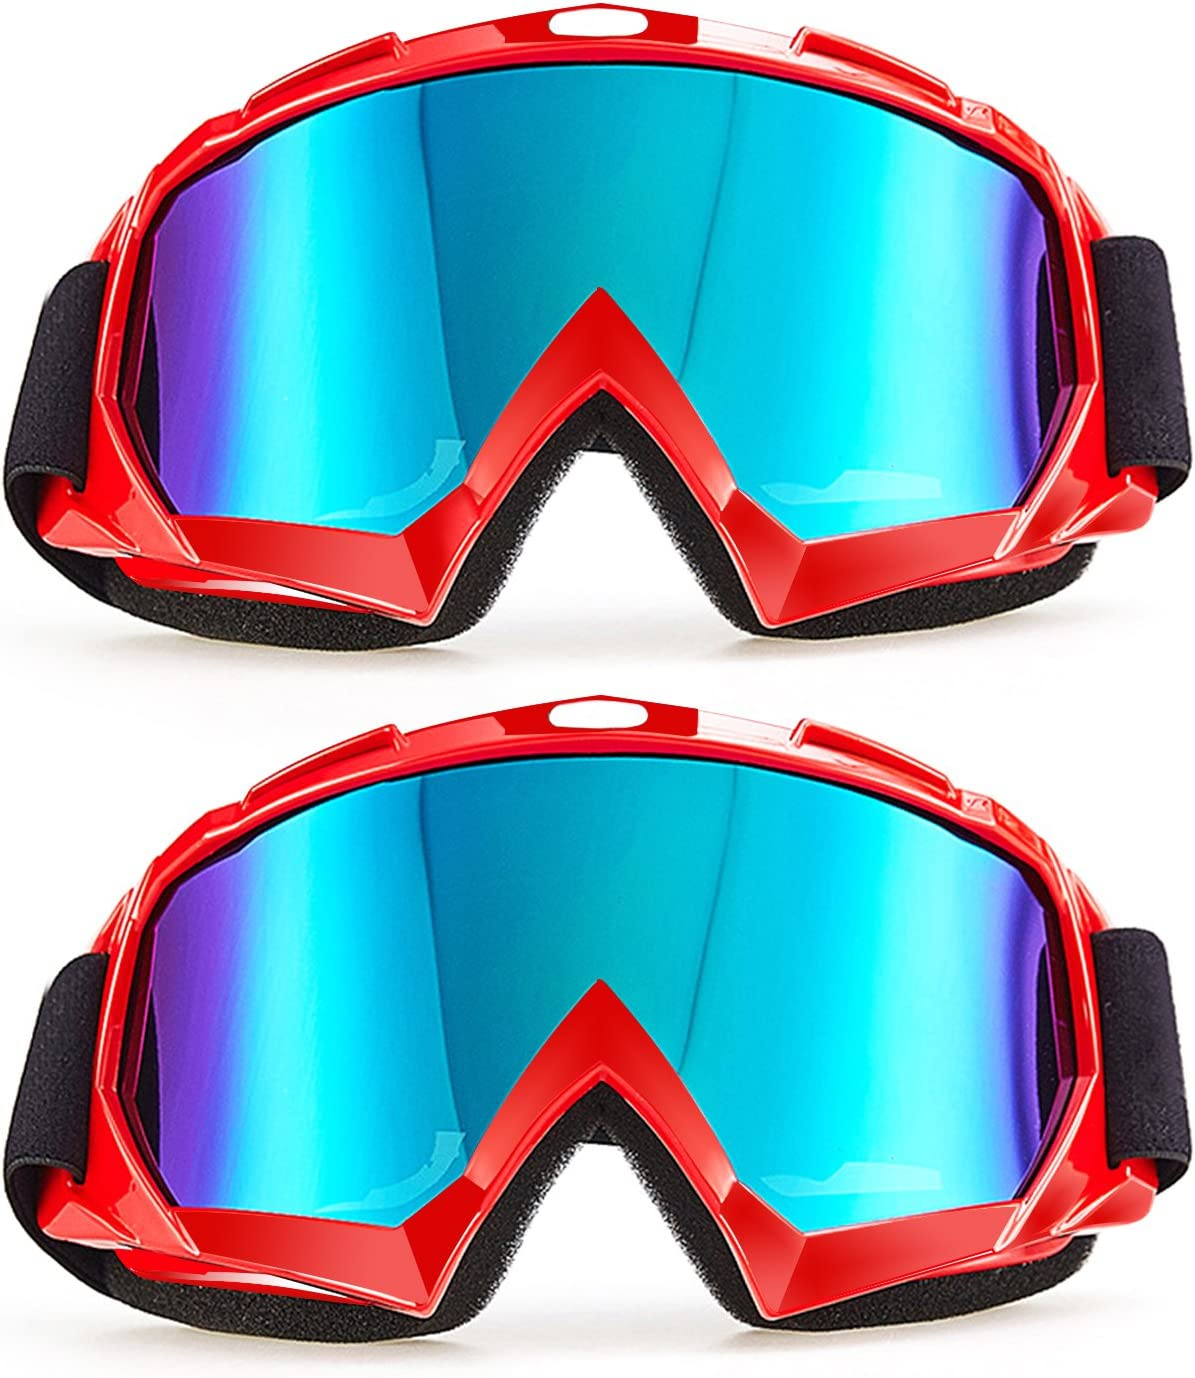 Carperipher Ski Goggles Snowboard Goggles Motorcycle Goggles Helmet Compatible Motorbike Motocross Dirt Bike Cycling ATV Racing Safety Goggles, 2 Pack